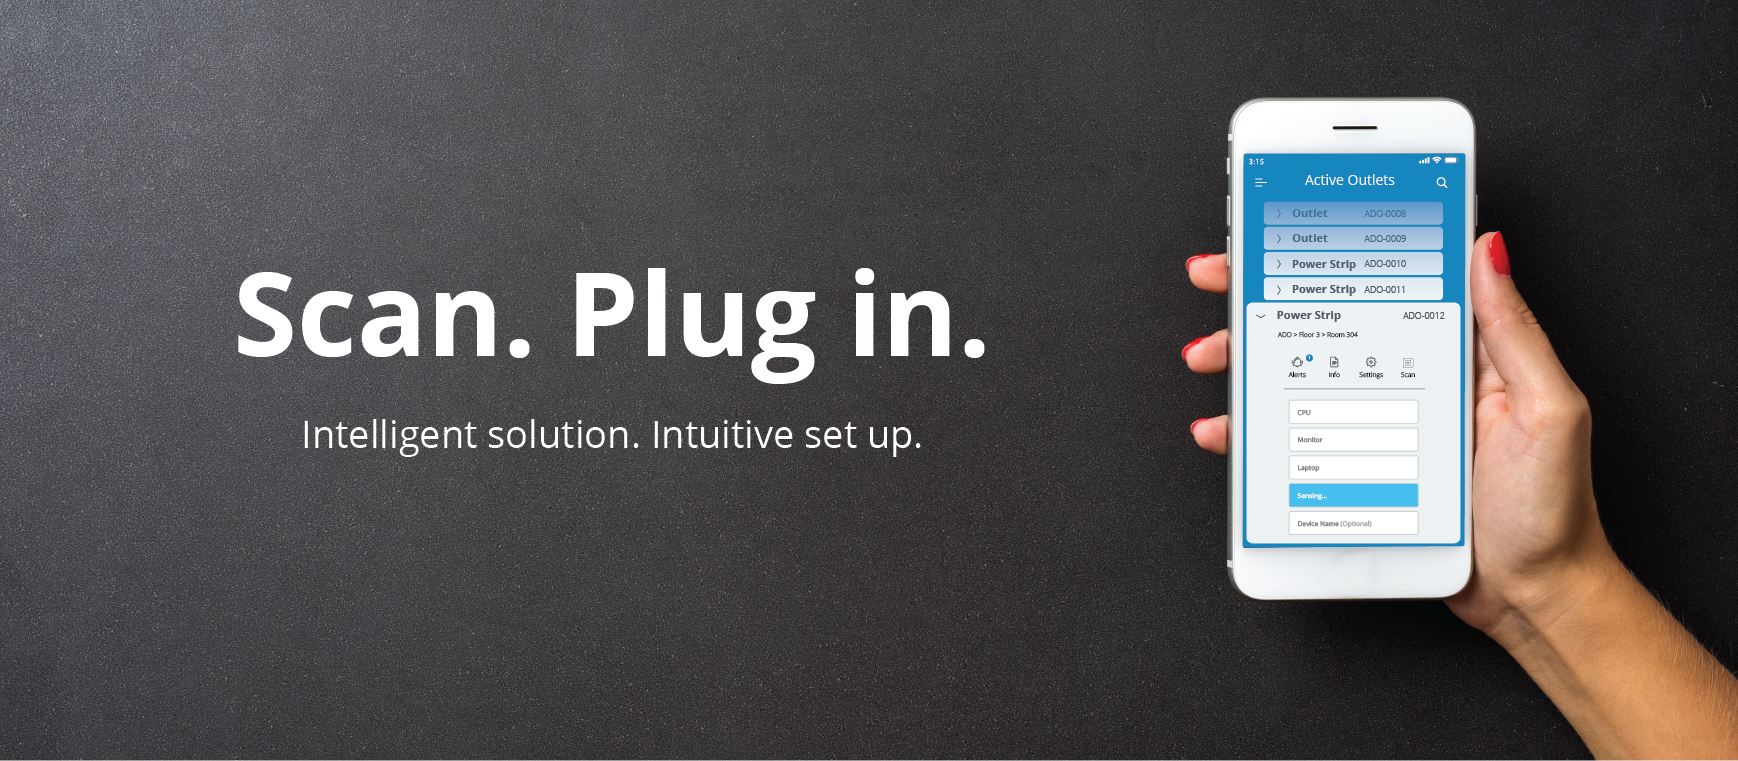 Hardware is shipped to your door. Scan the QR code on a back of an outlet or power strip to activate it. Plug in. Repeat. No electrician required.